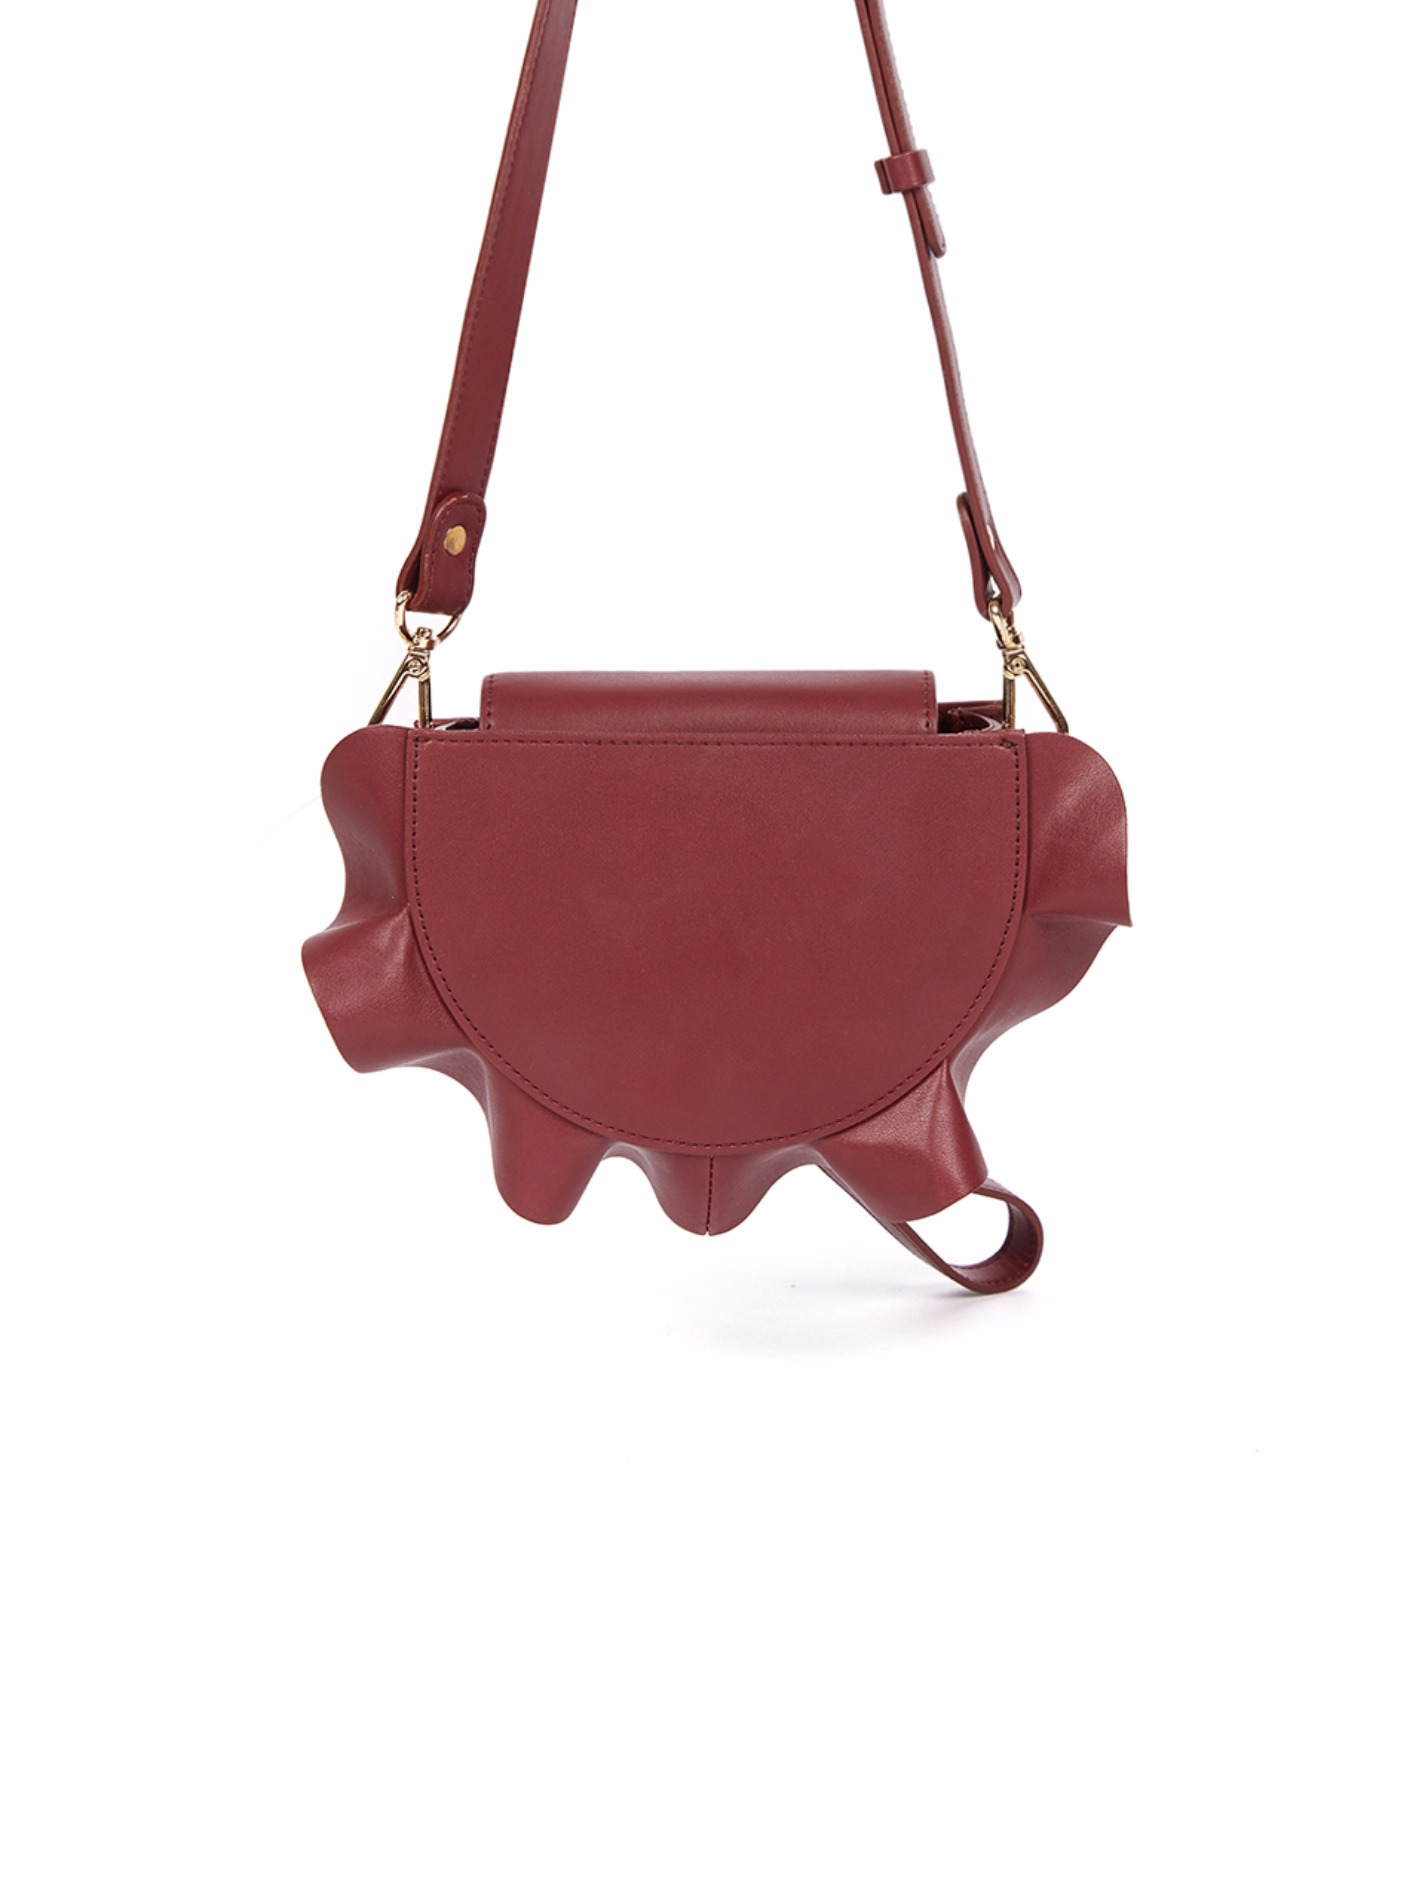 4 Way Pie Bag _ Burgundy